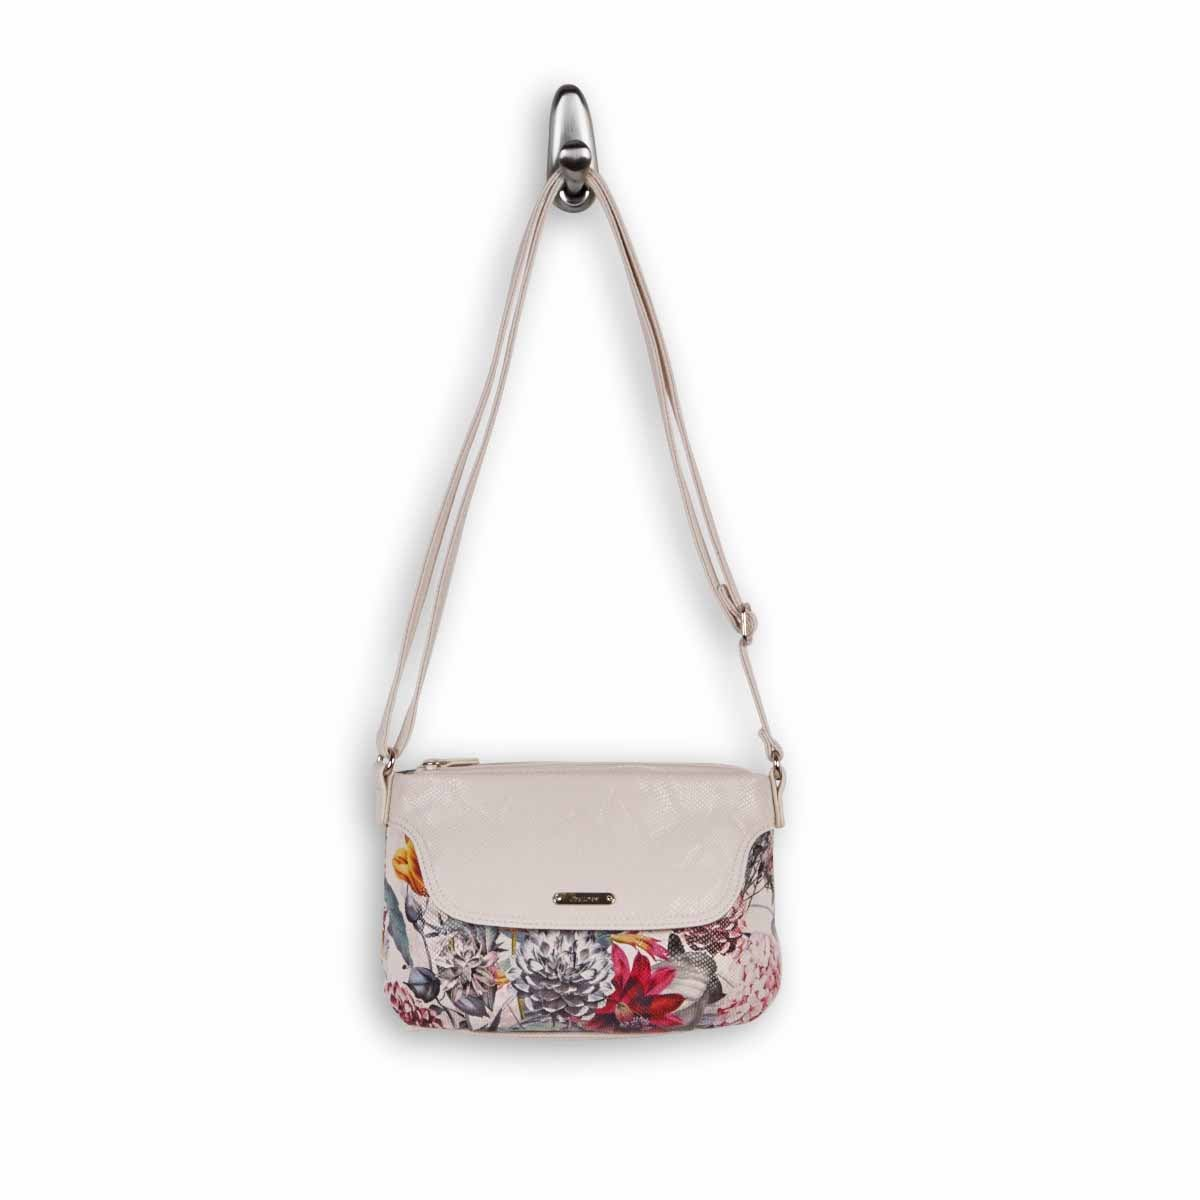 Lds Ruby wht floral multi cross body bag